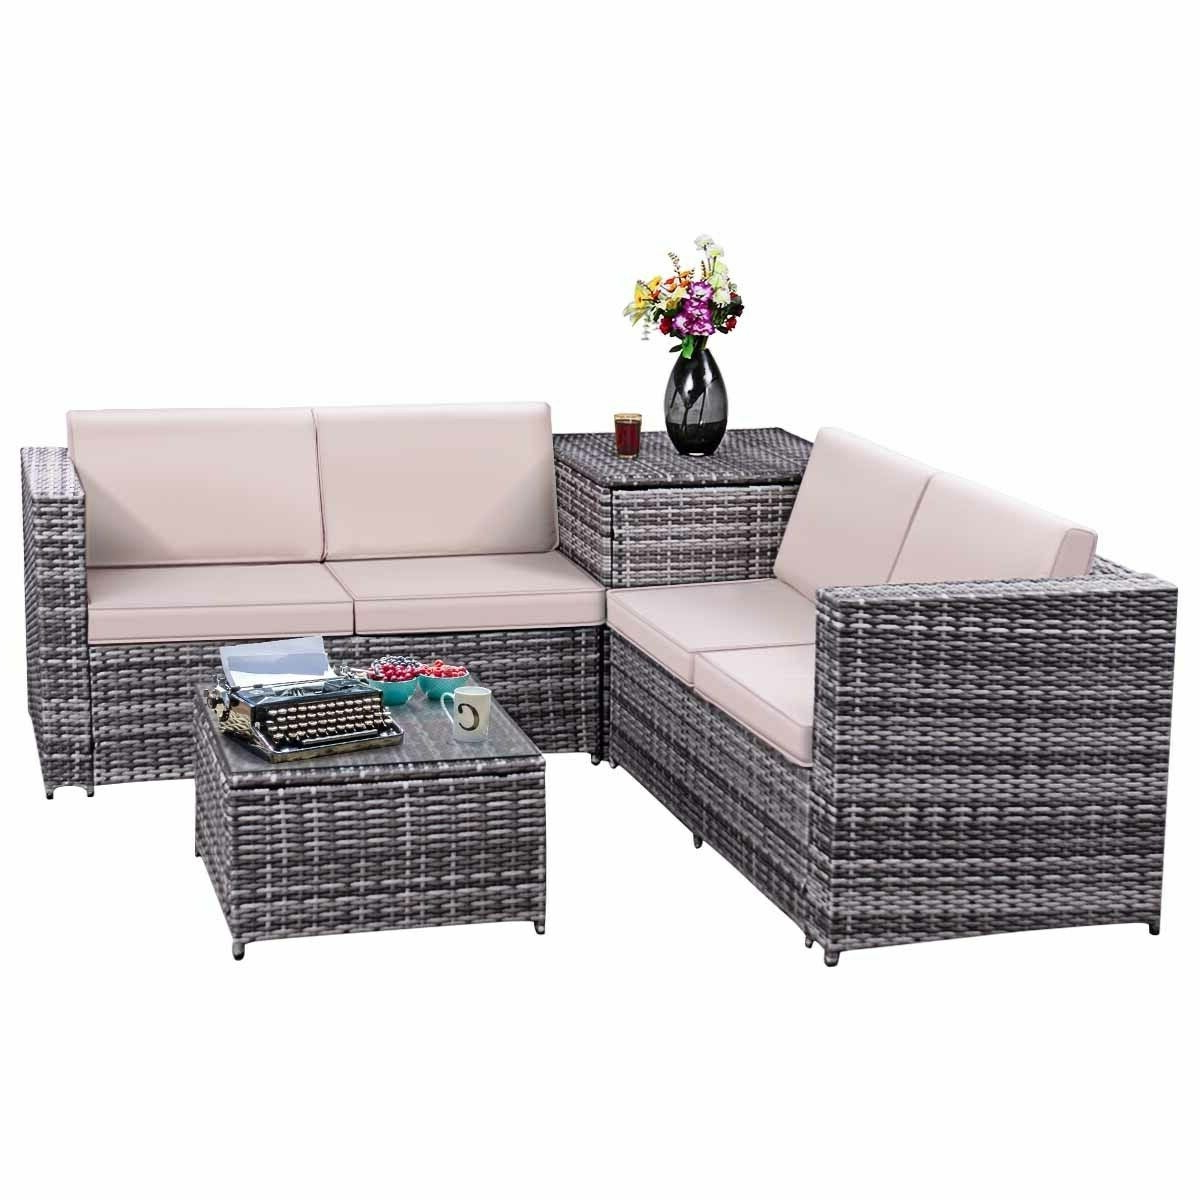 Buy Wicker Outdoor Sofas, Chairs & Sectionals Online At Within Most Popular Ostrowski Patio Sectionals With Cushions (View 25 of 25)